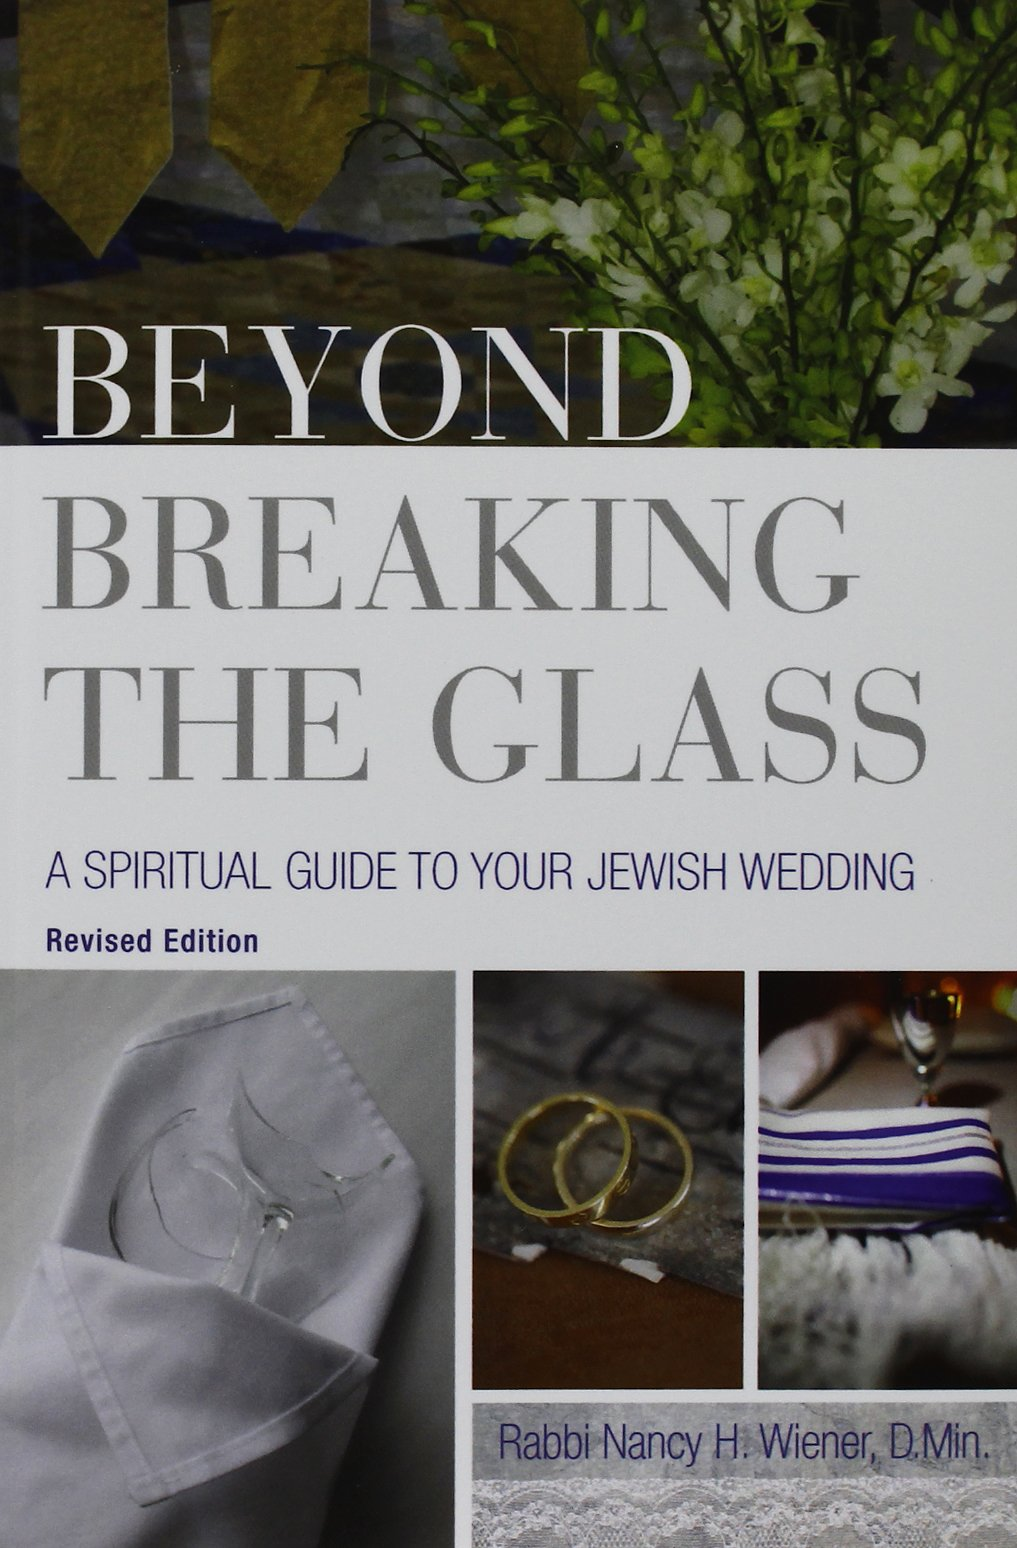 Beyond Breaking the Glass: A Spiritual Guide to Your Jewish Wedding